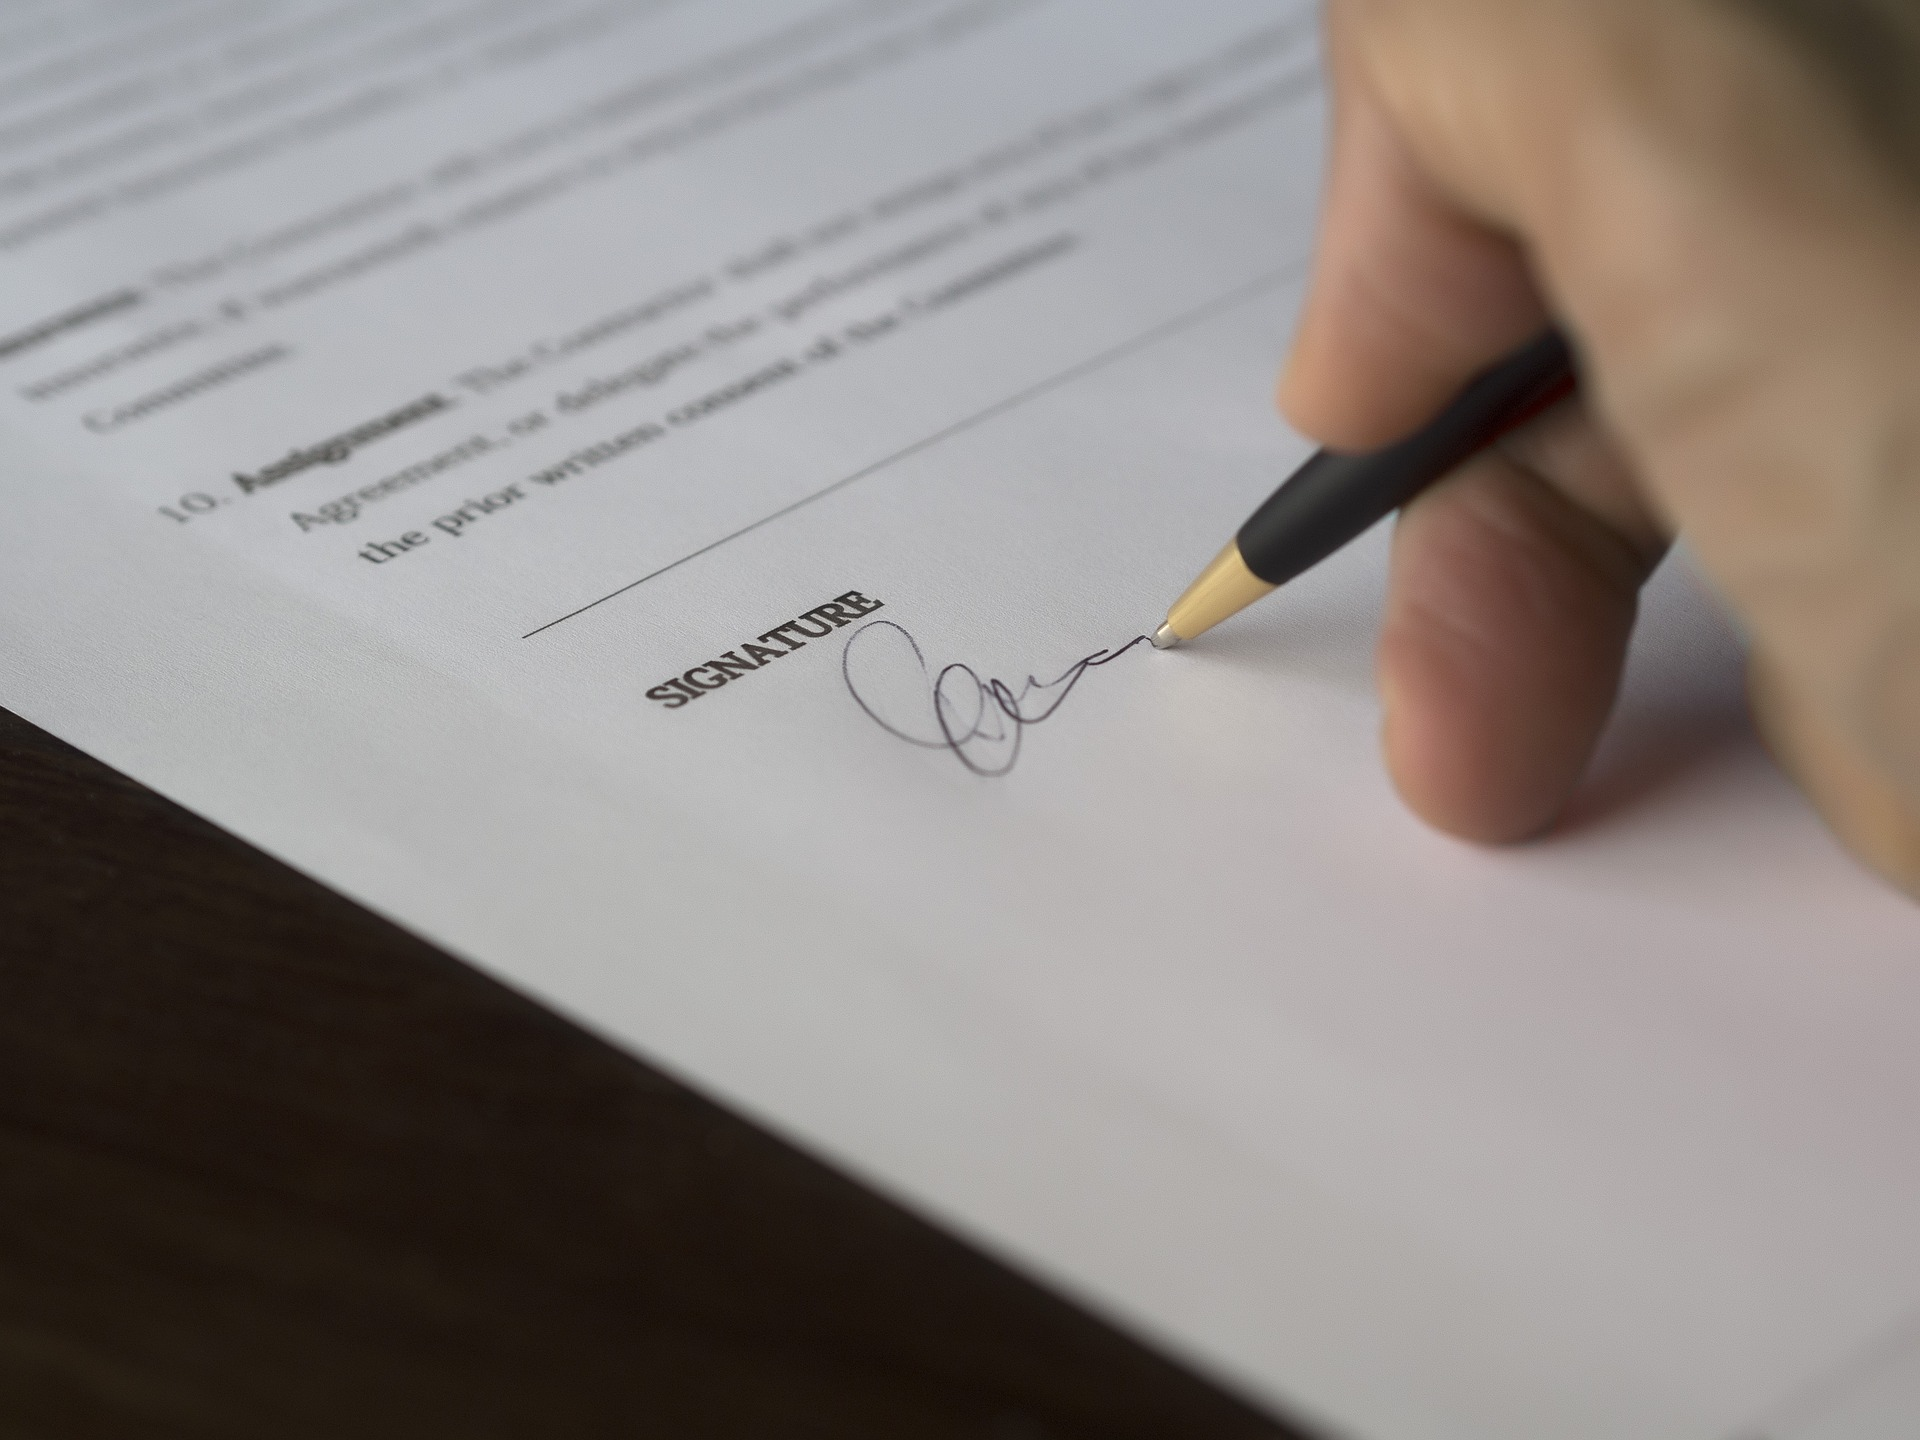 A contract that is in the process of being signed